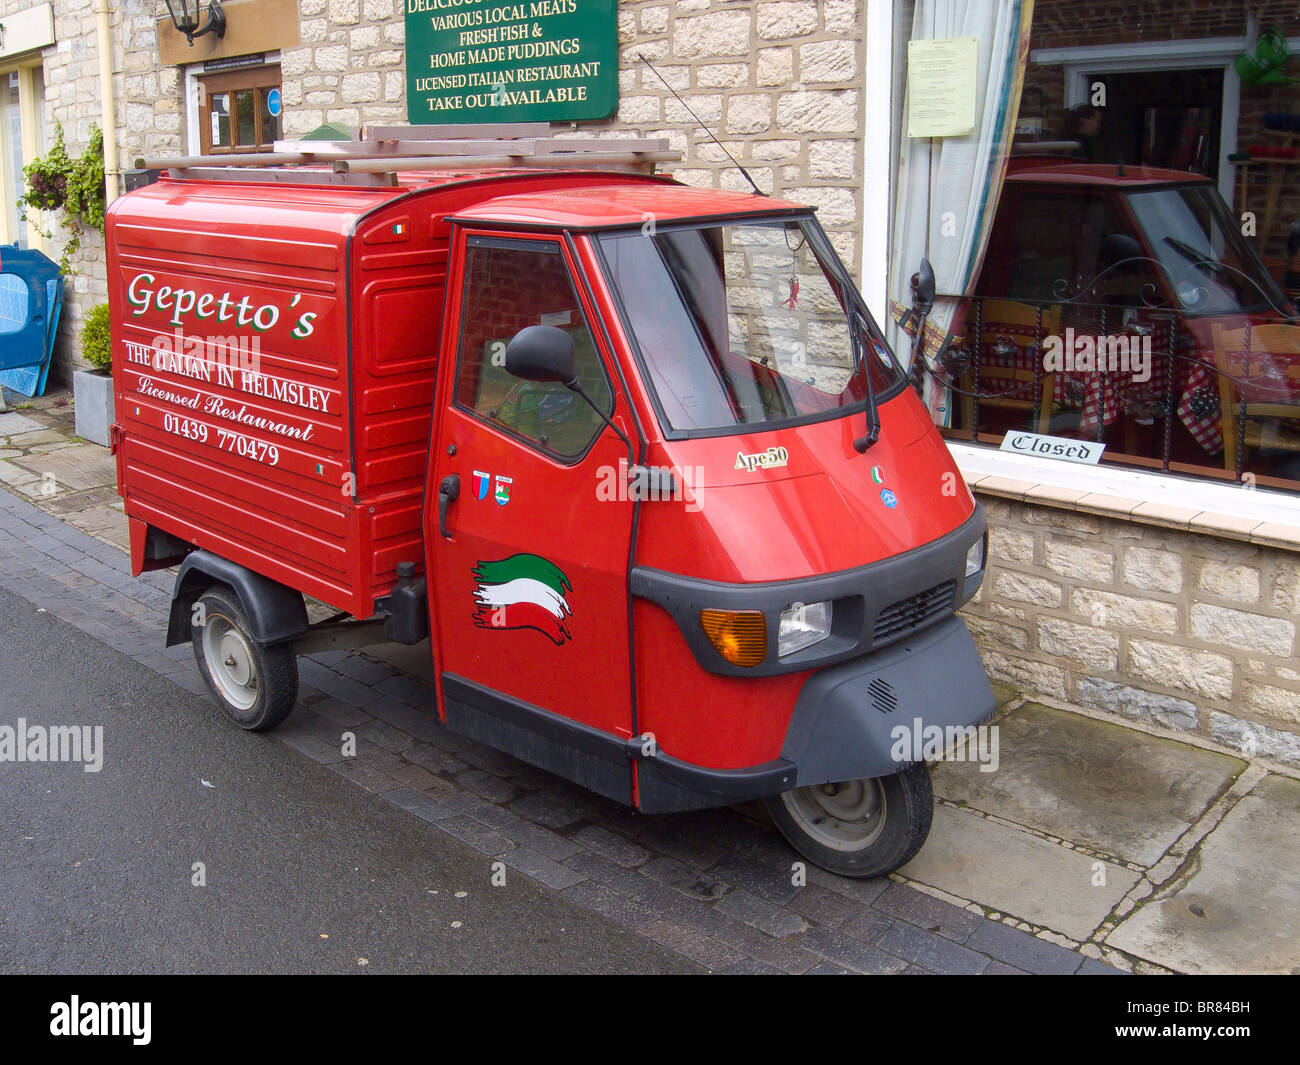 bright red piaggio ape 50 van used by an italian restaurant in stock photo 31526533 alamy. Black Bedroom Furniture Sets. Home Design Ideas